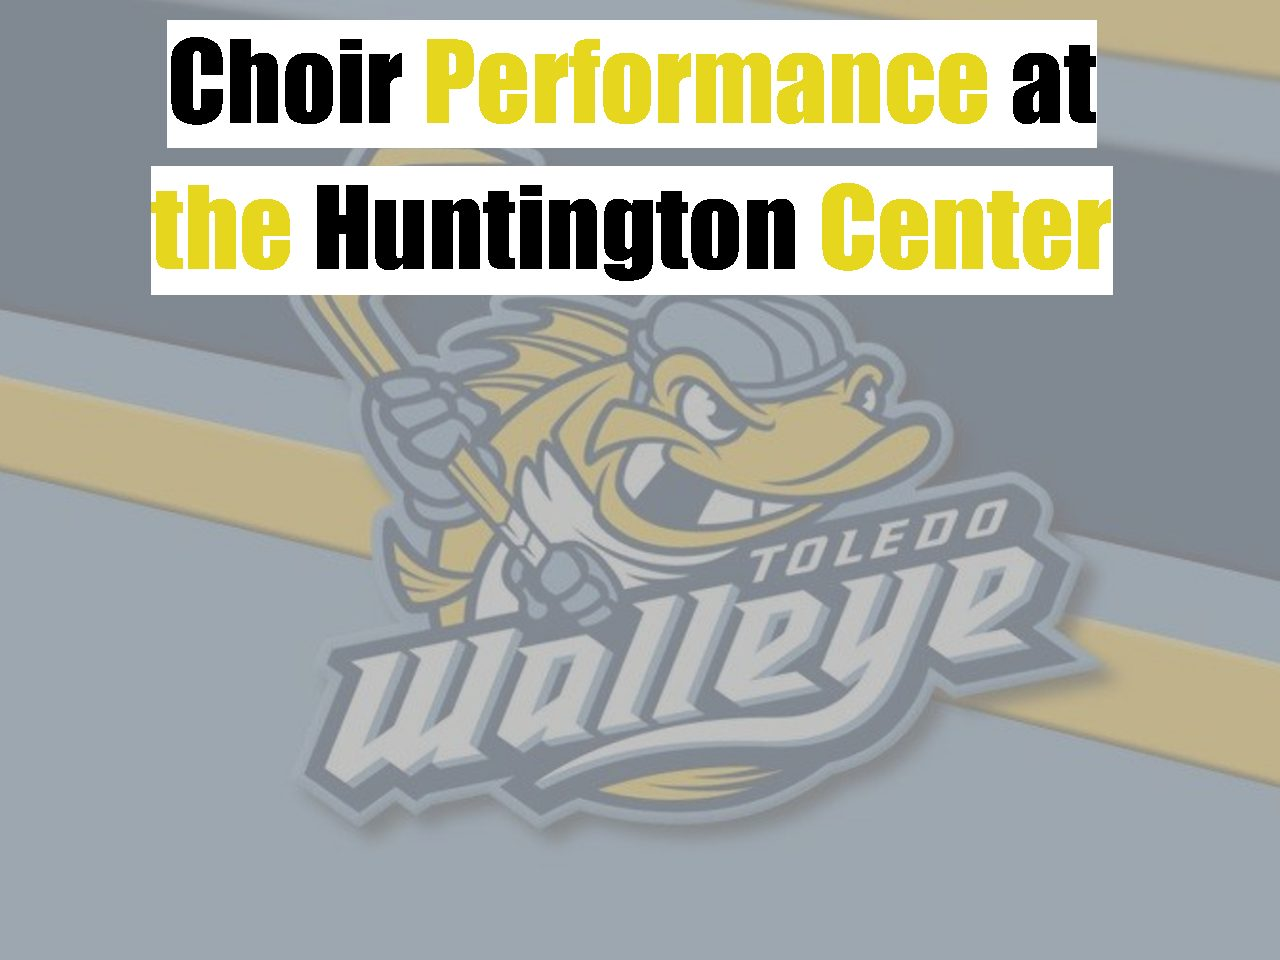 Choir Performance at The Huntington Center